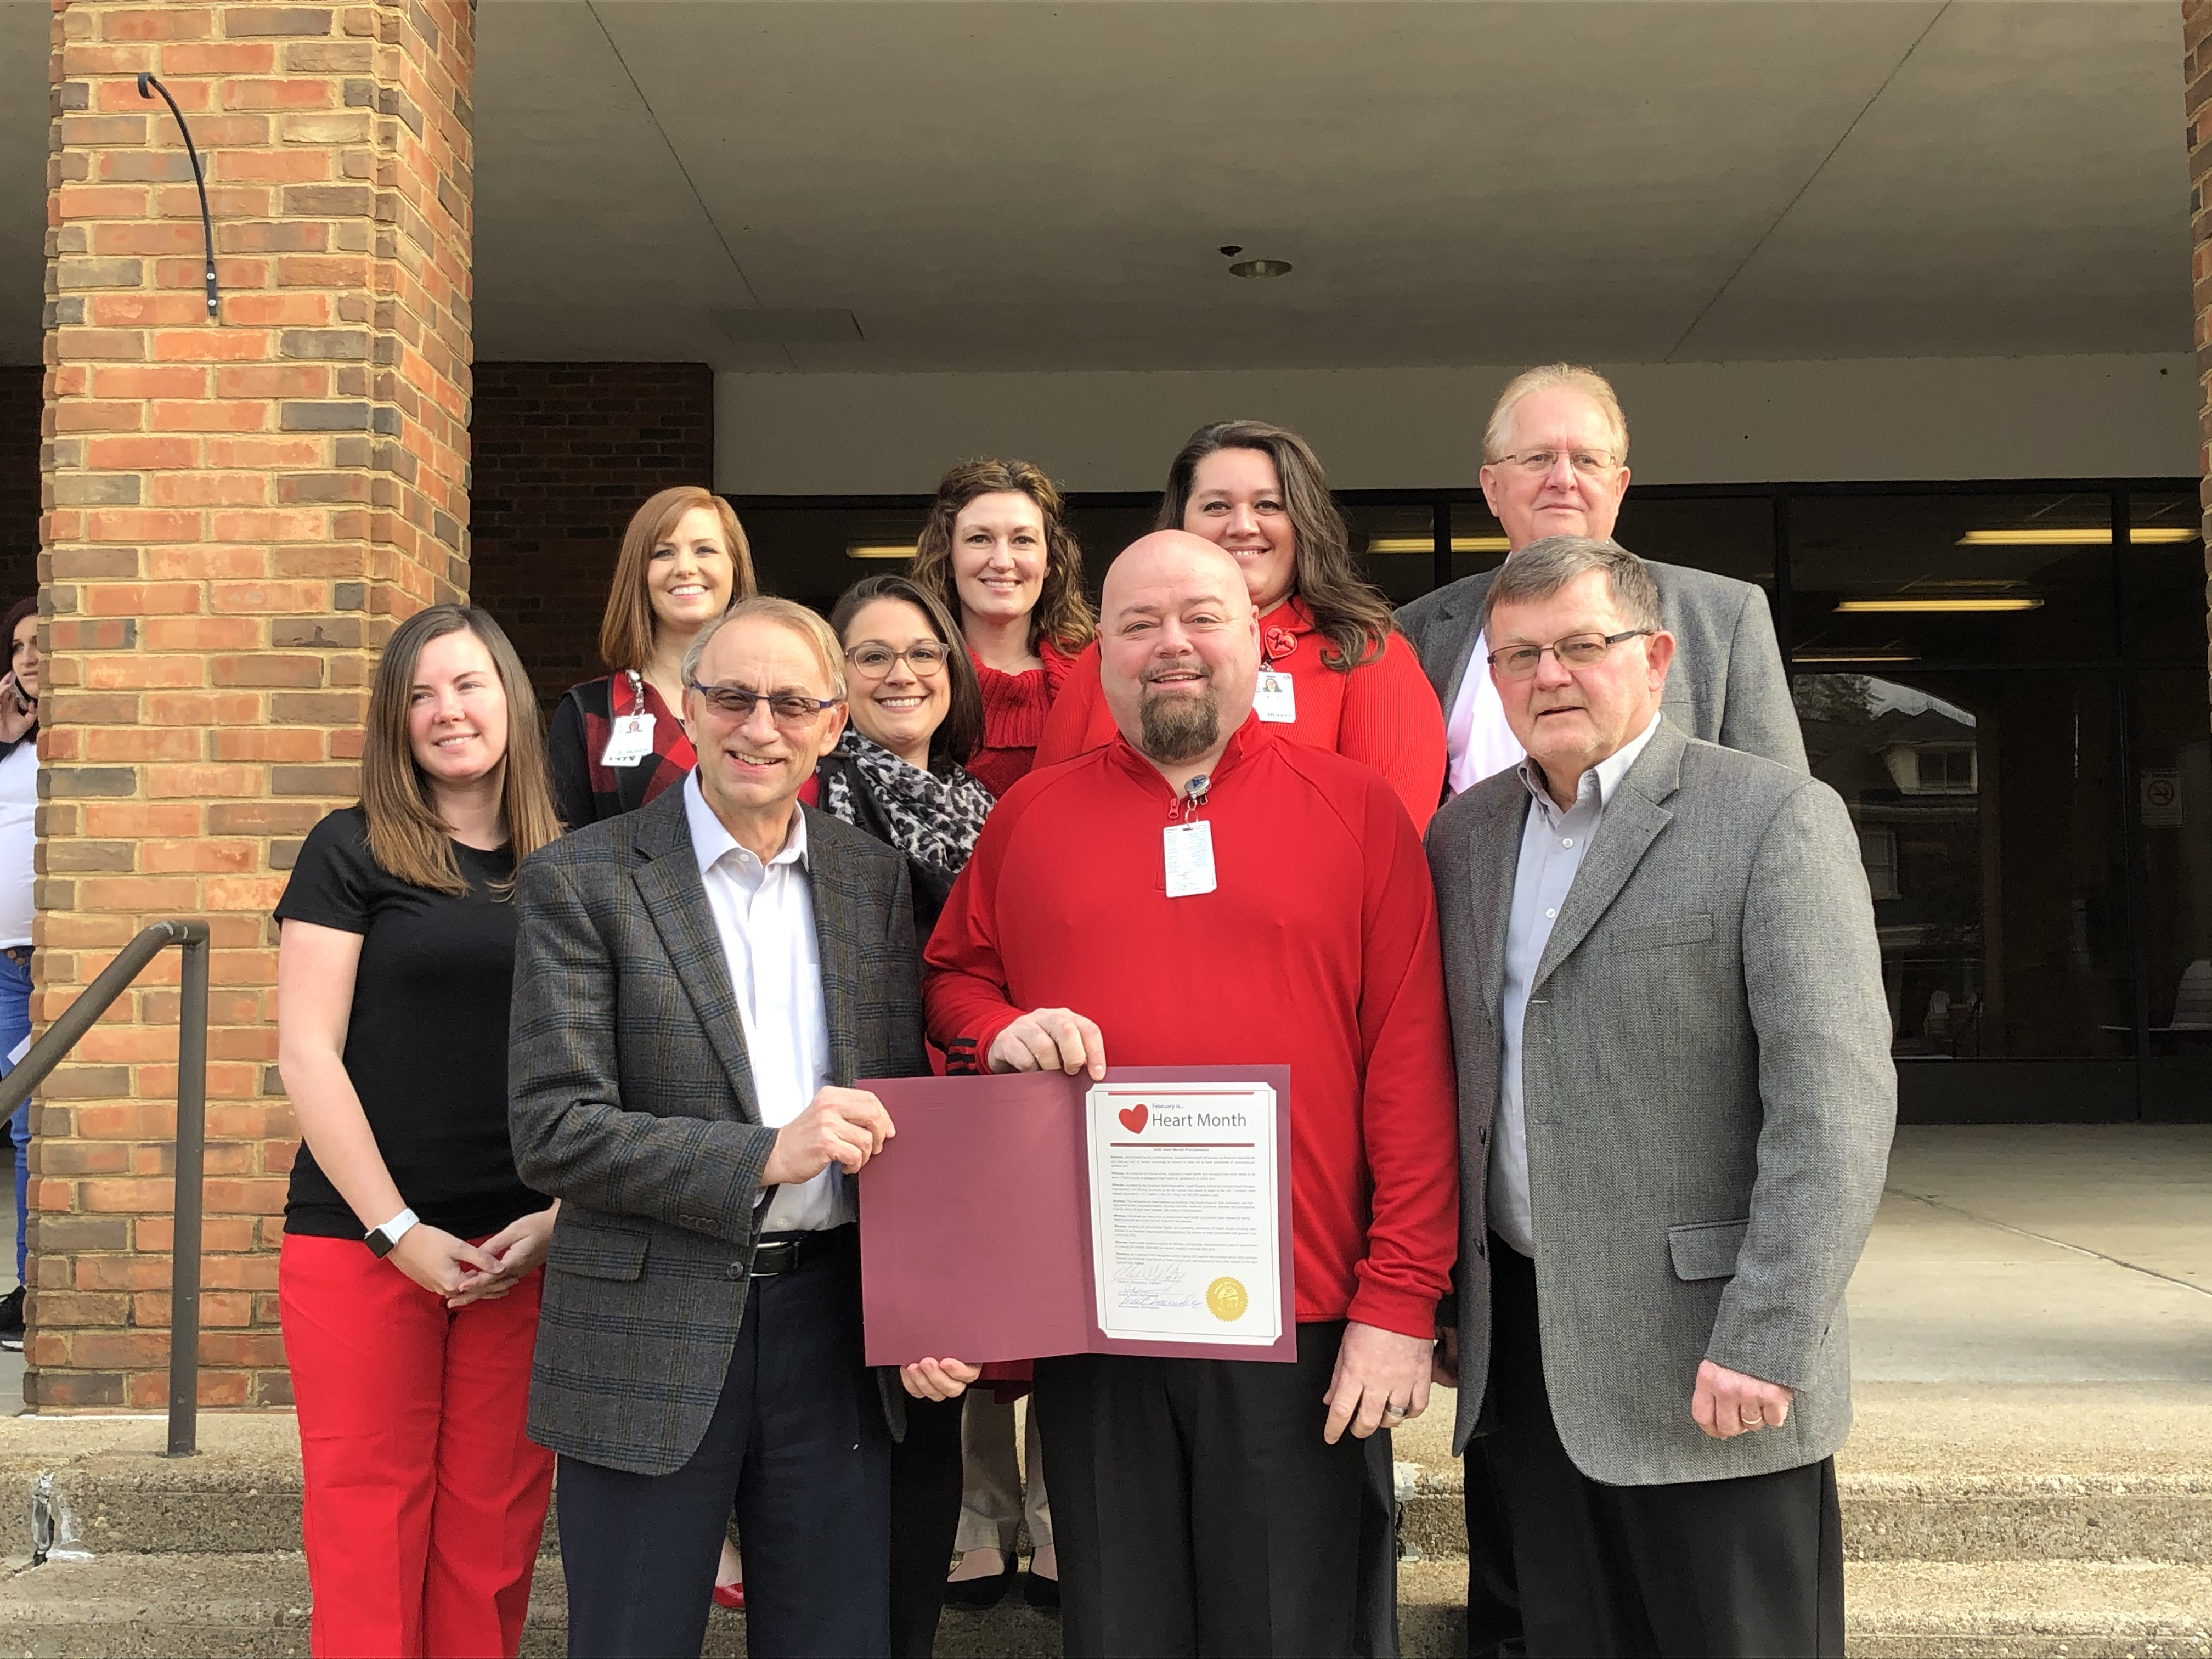 Gallia County Heart Month Proclamation Image